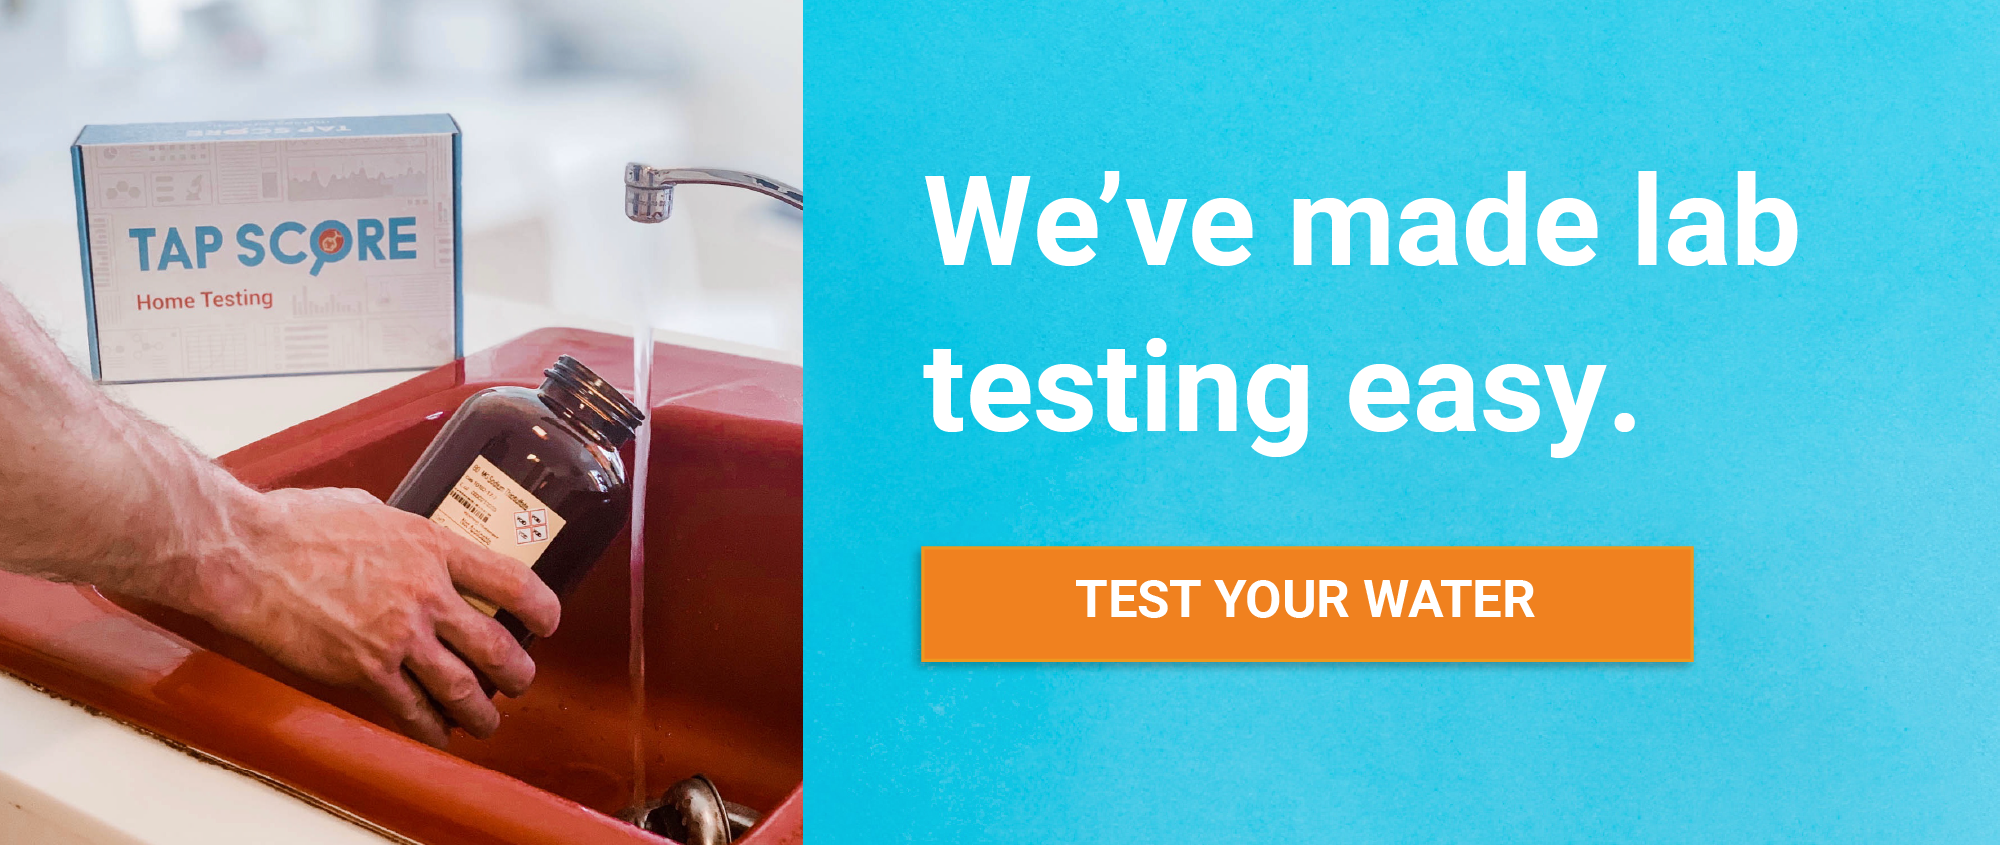 Water testing made easy